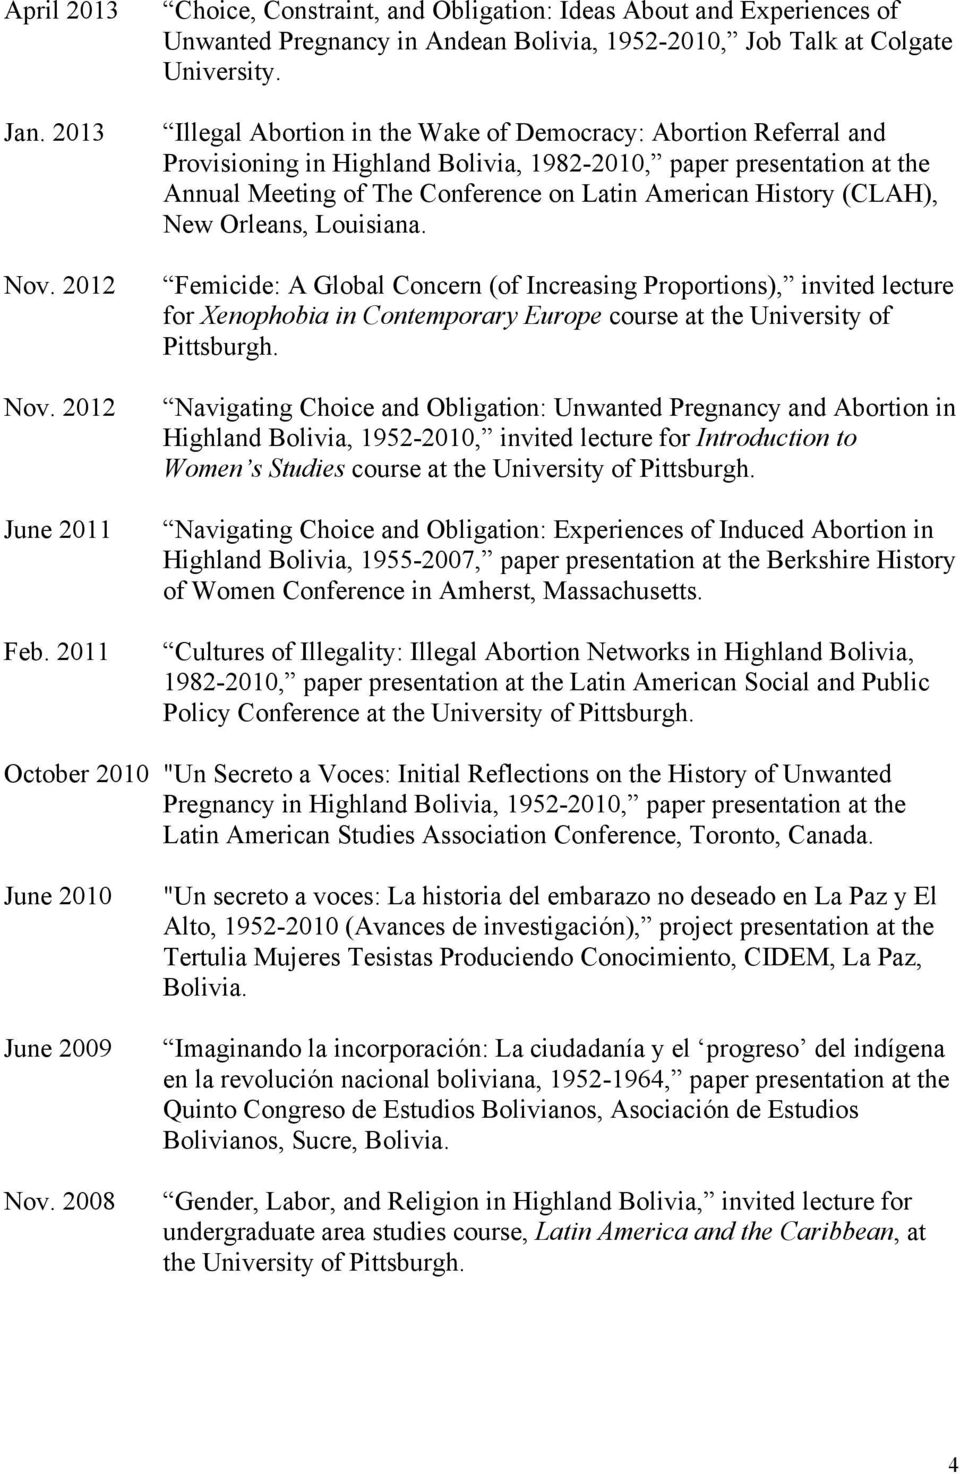 Illegal Abortion in the Wake of Democracy: Abortion Referral and Provisioning in Highland Bolivia, 1982-2010, paper presentation at the Annual Meeting of The Conference on Latin American History